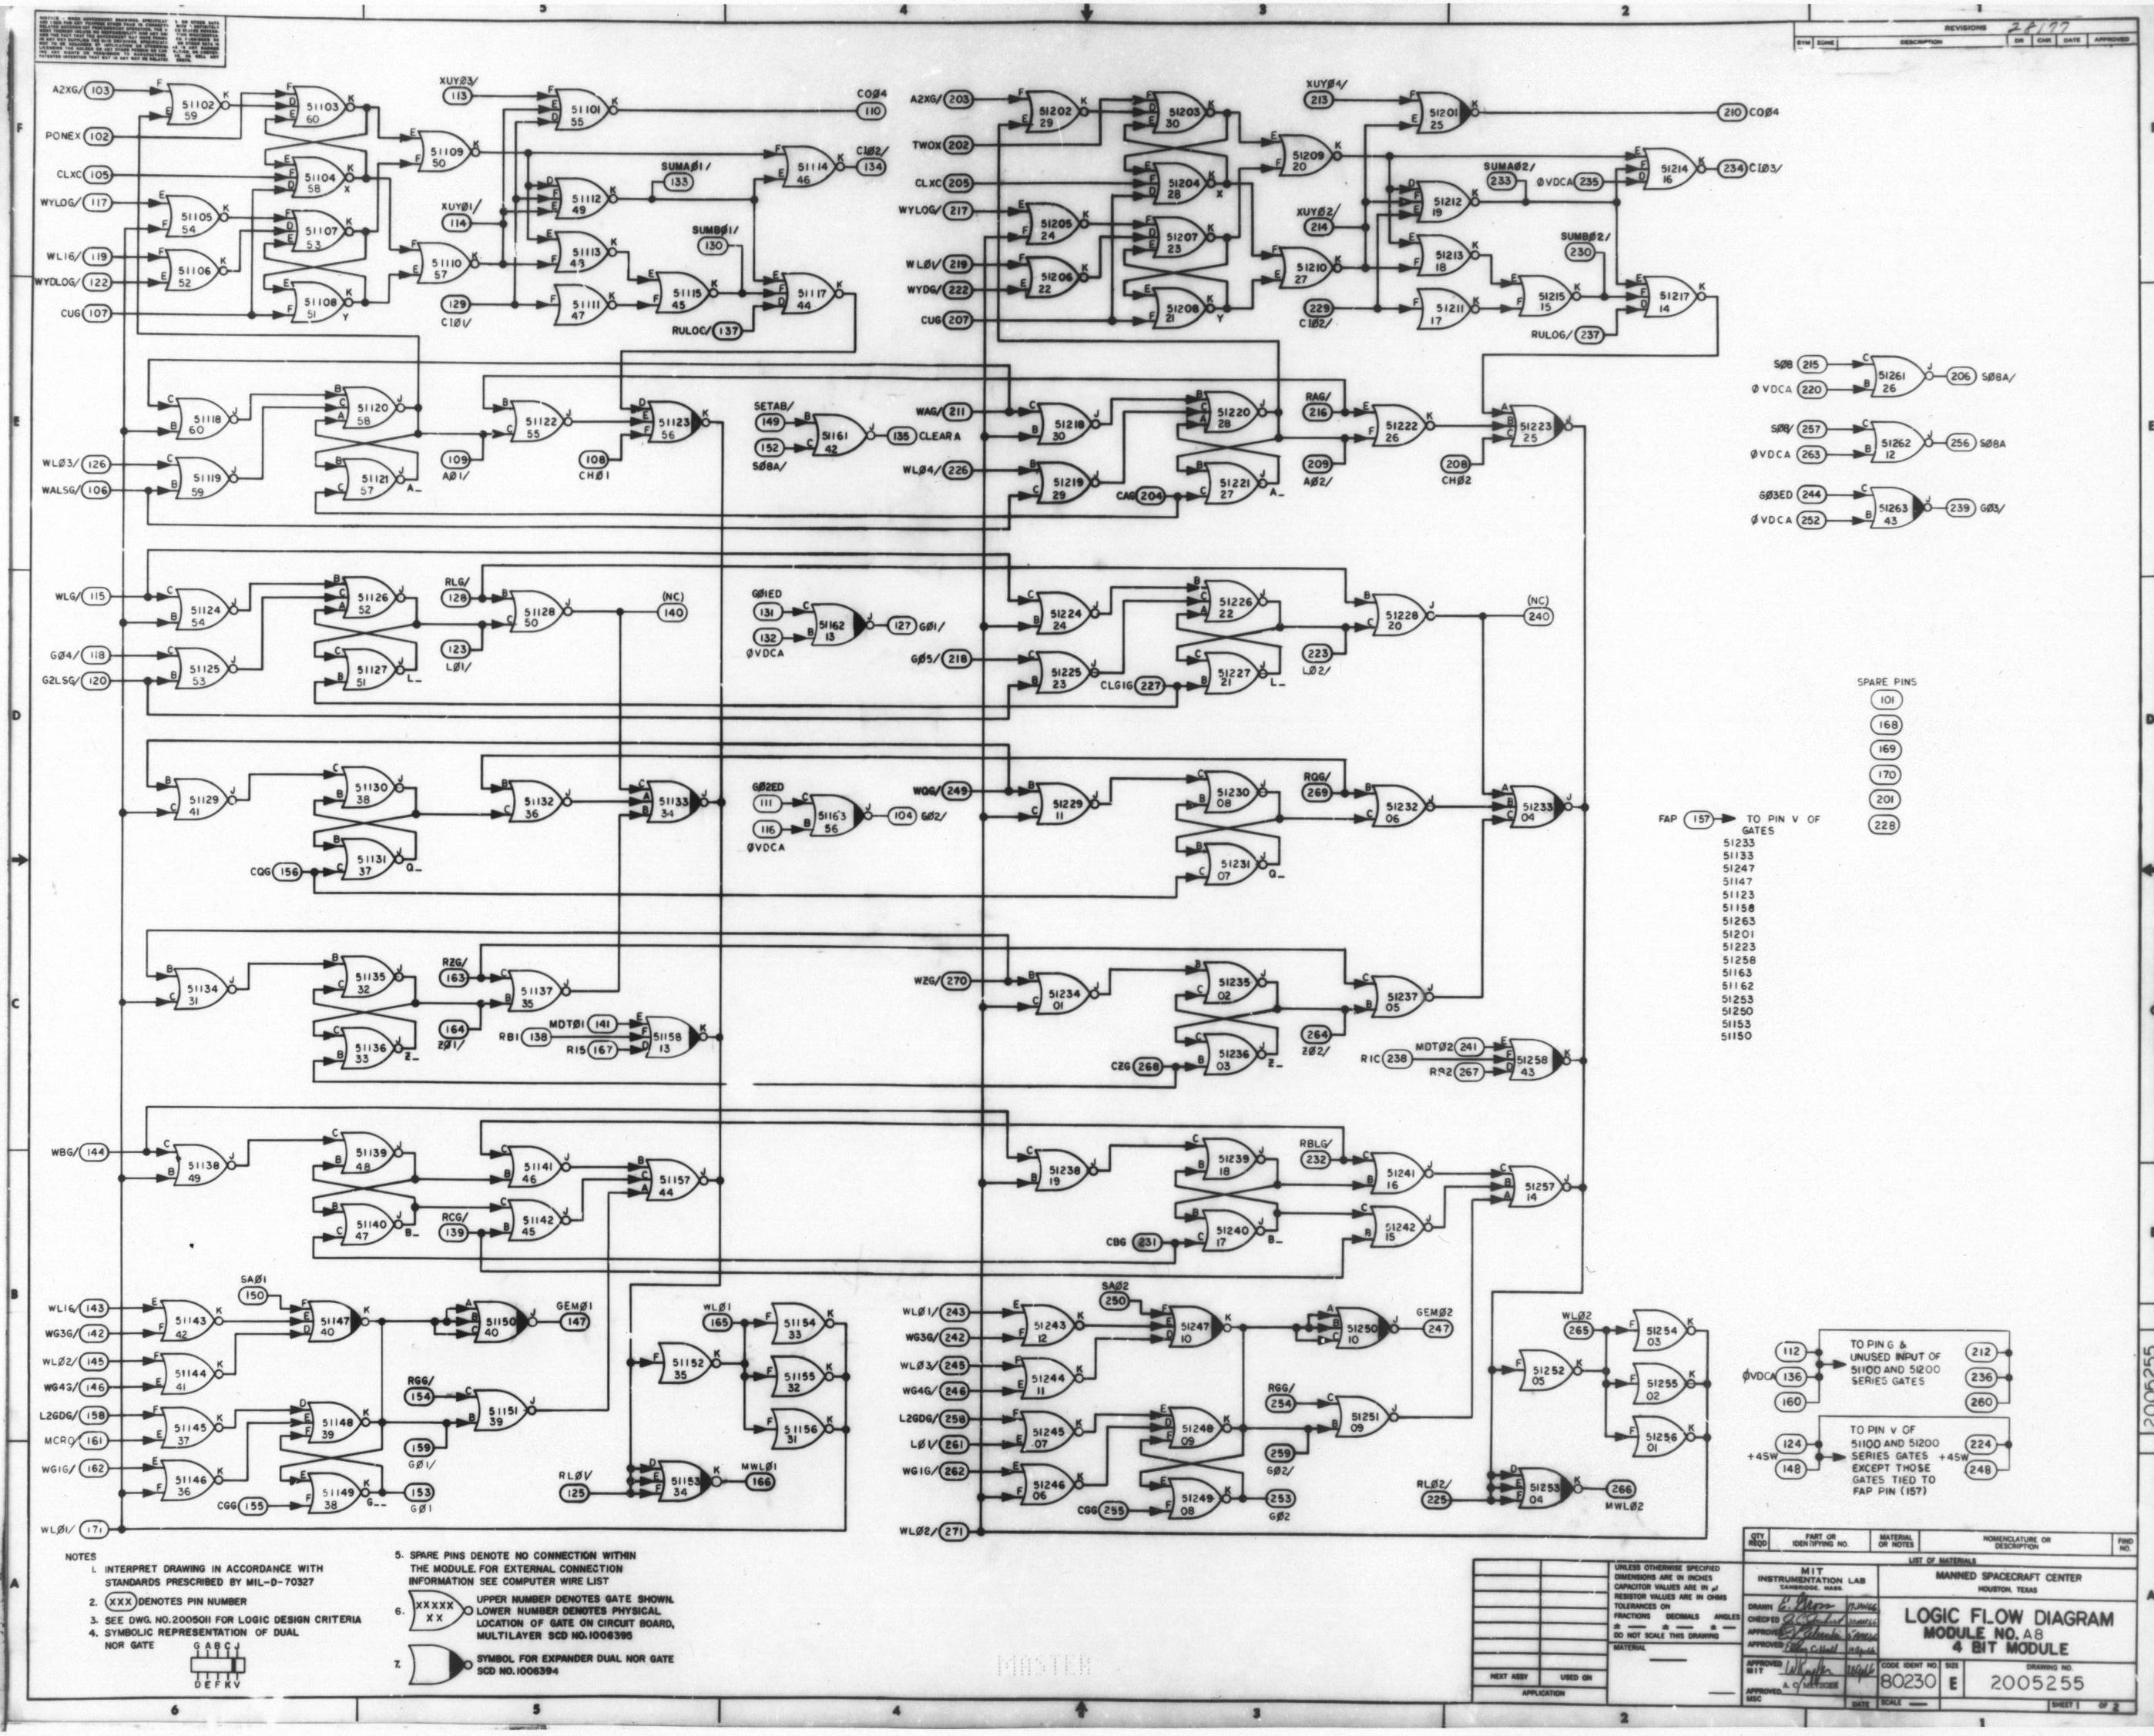 8 1 Mux Logic Diagram